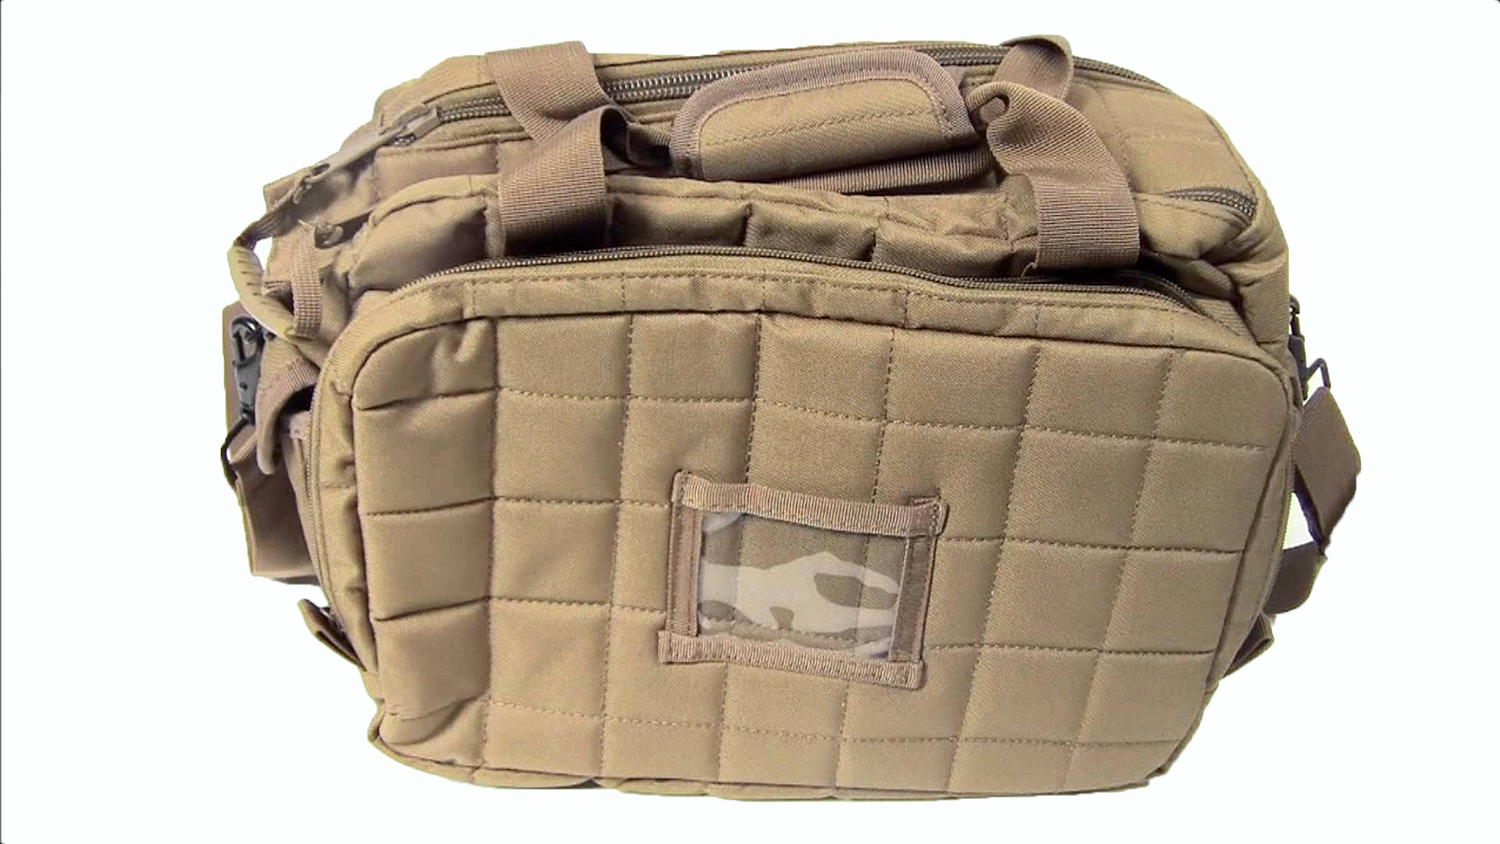 Desert ta Voodoo Tactical Scorpion range bag